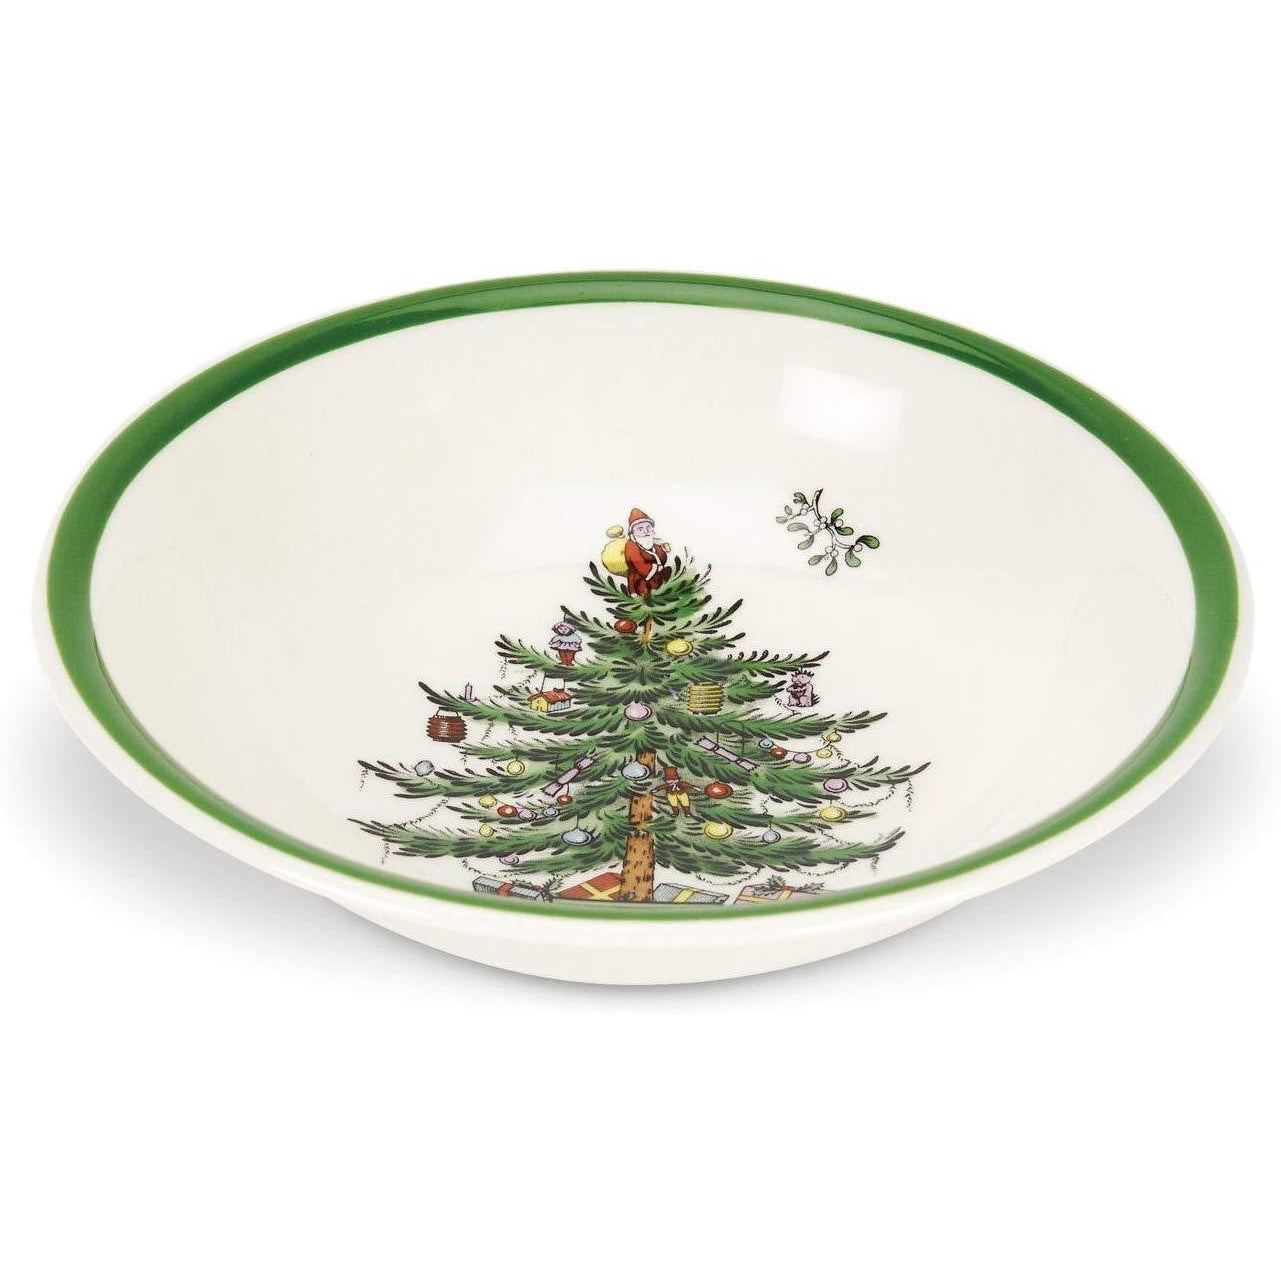 Spode Christmas Tree Ascot 8-inch Cereal Bowl, Set of 4